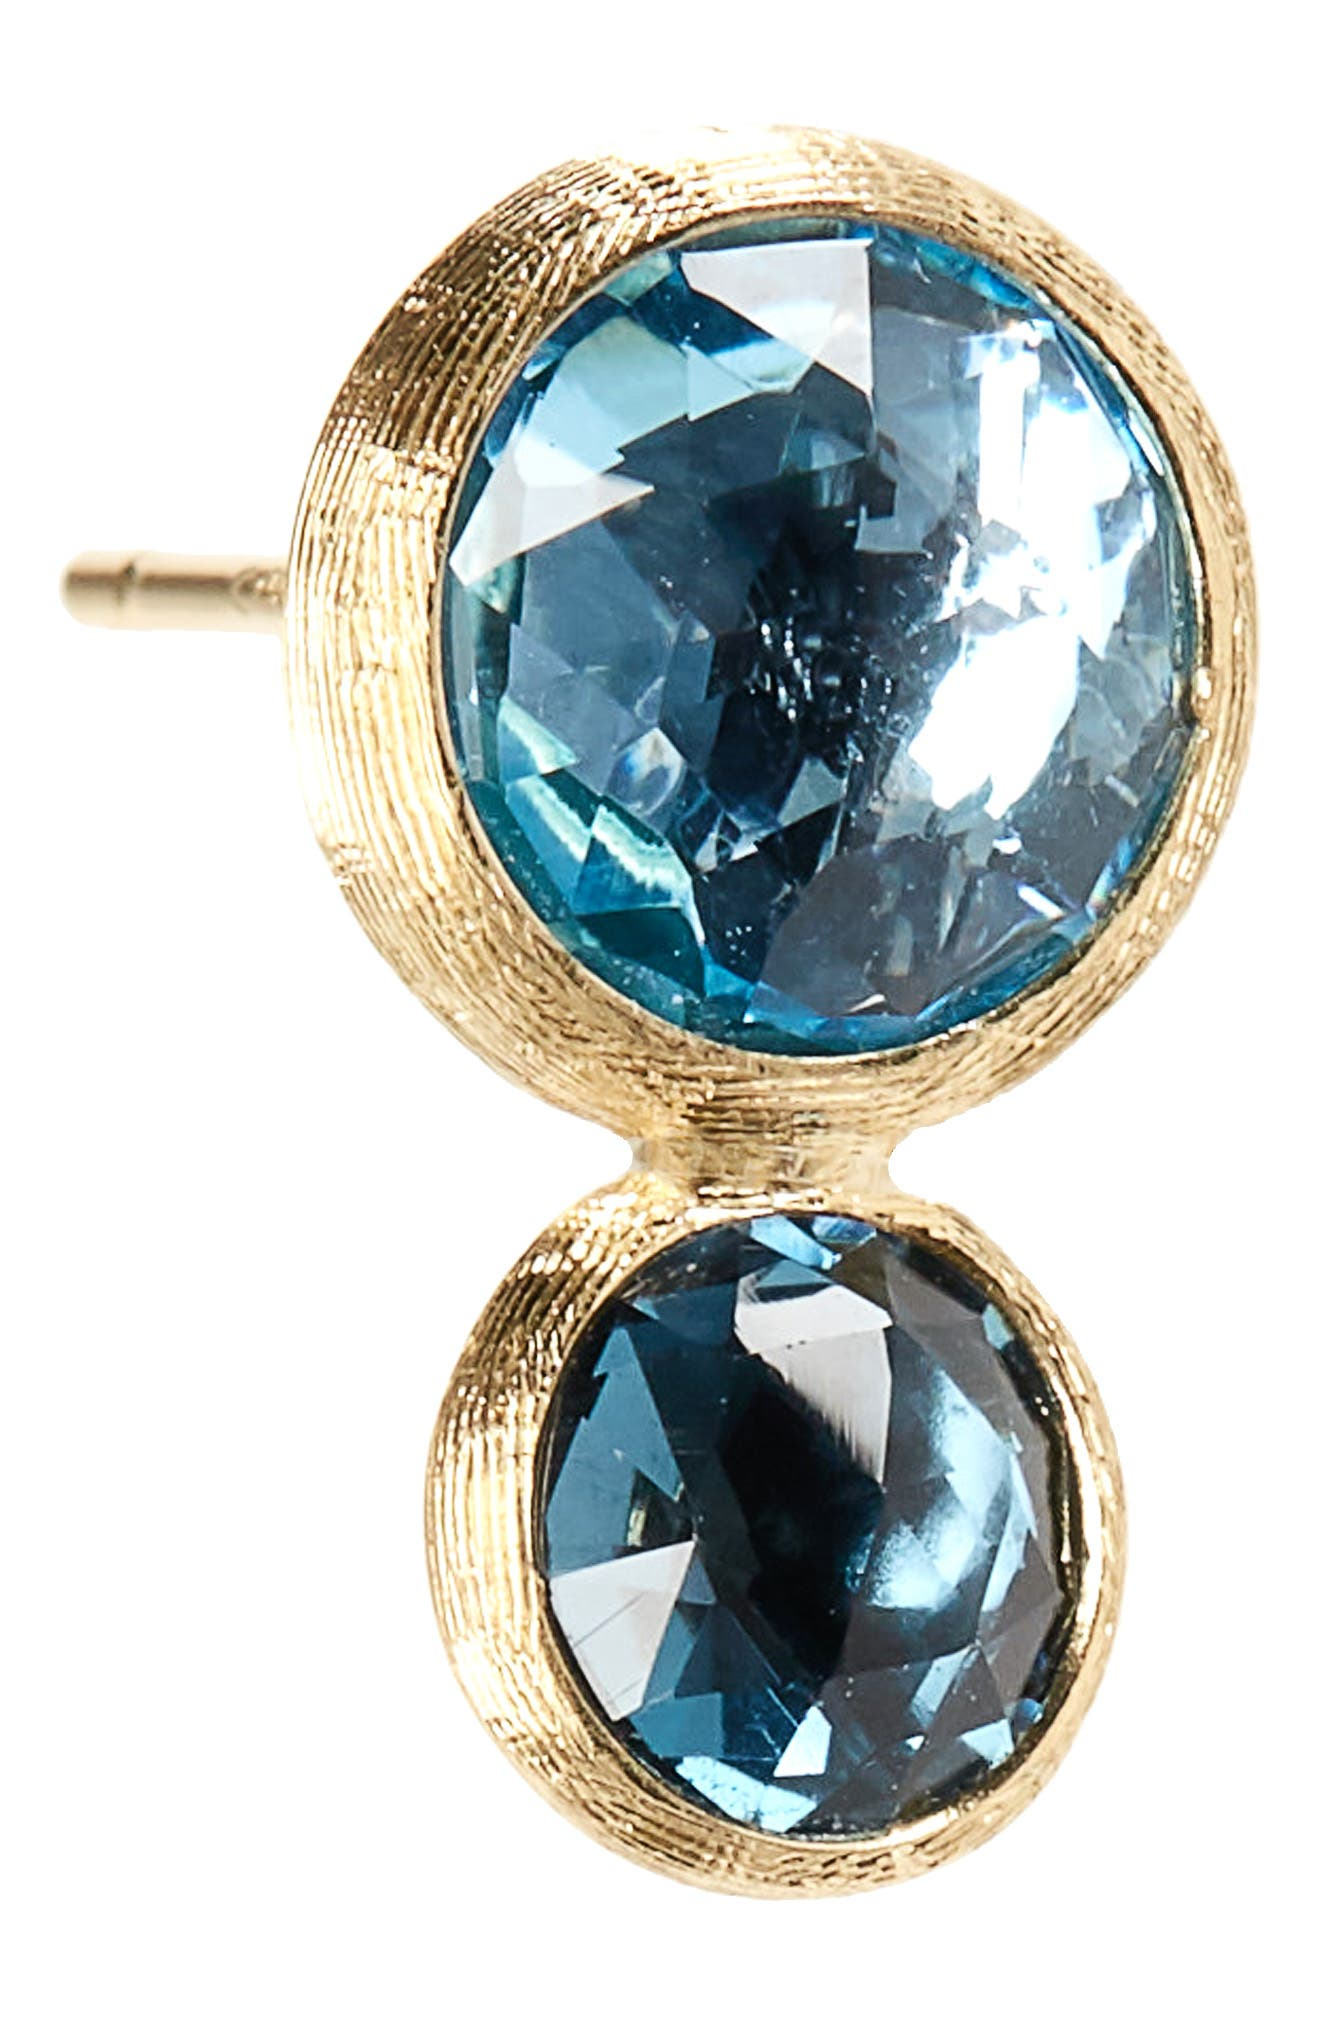 Jaipur 2-Stone Blue Topaz Stud Earrings,                             Alternate thumbnail 5, color,                             710